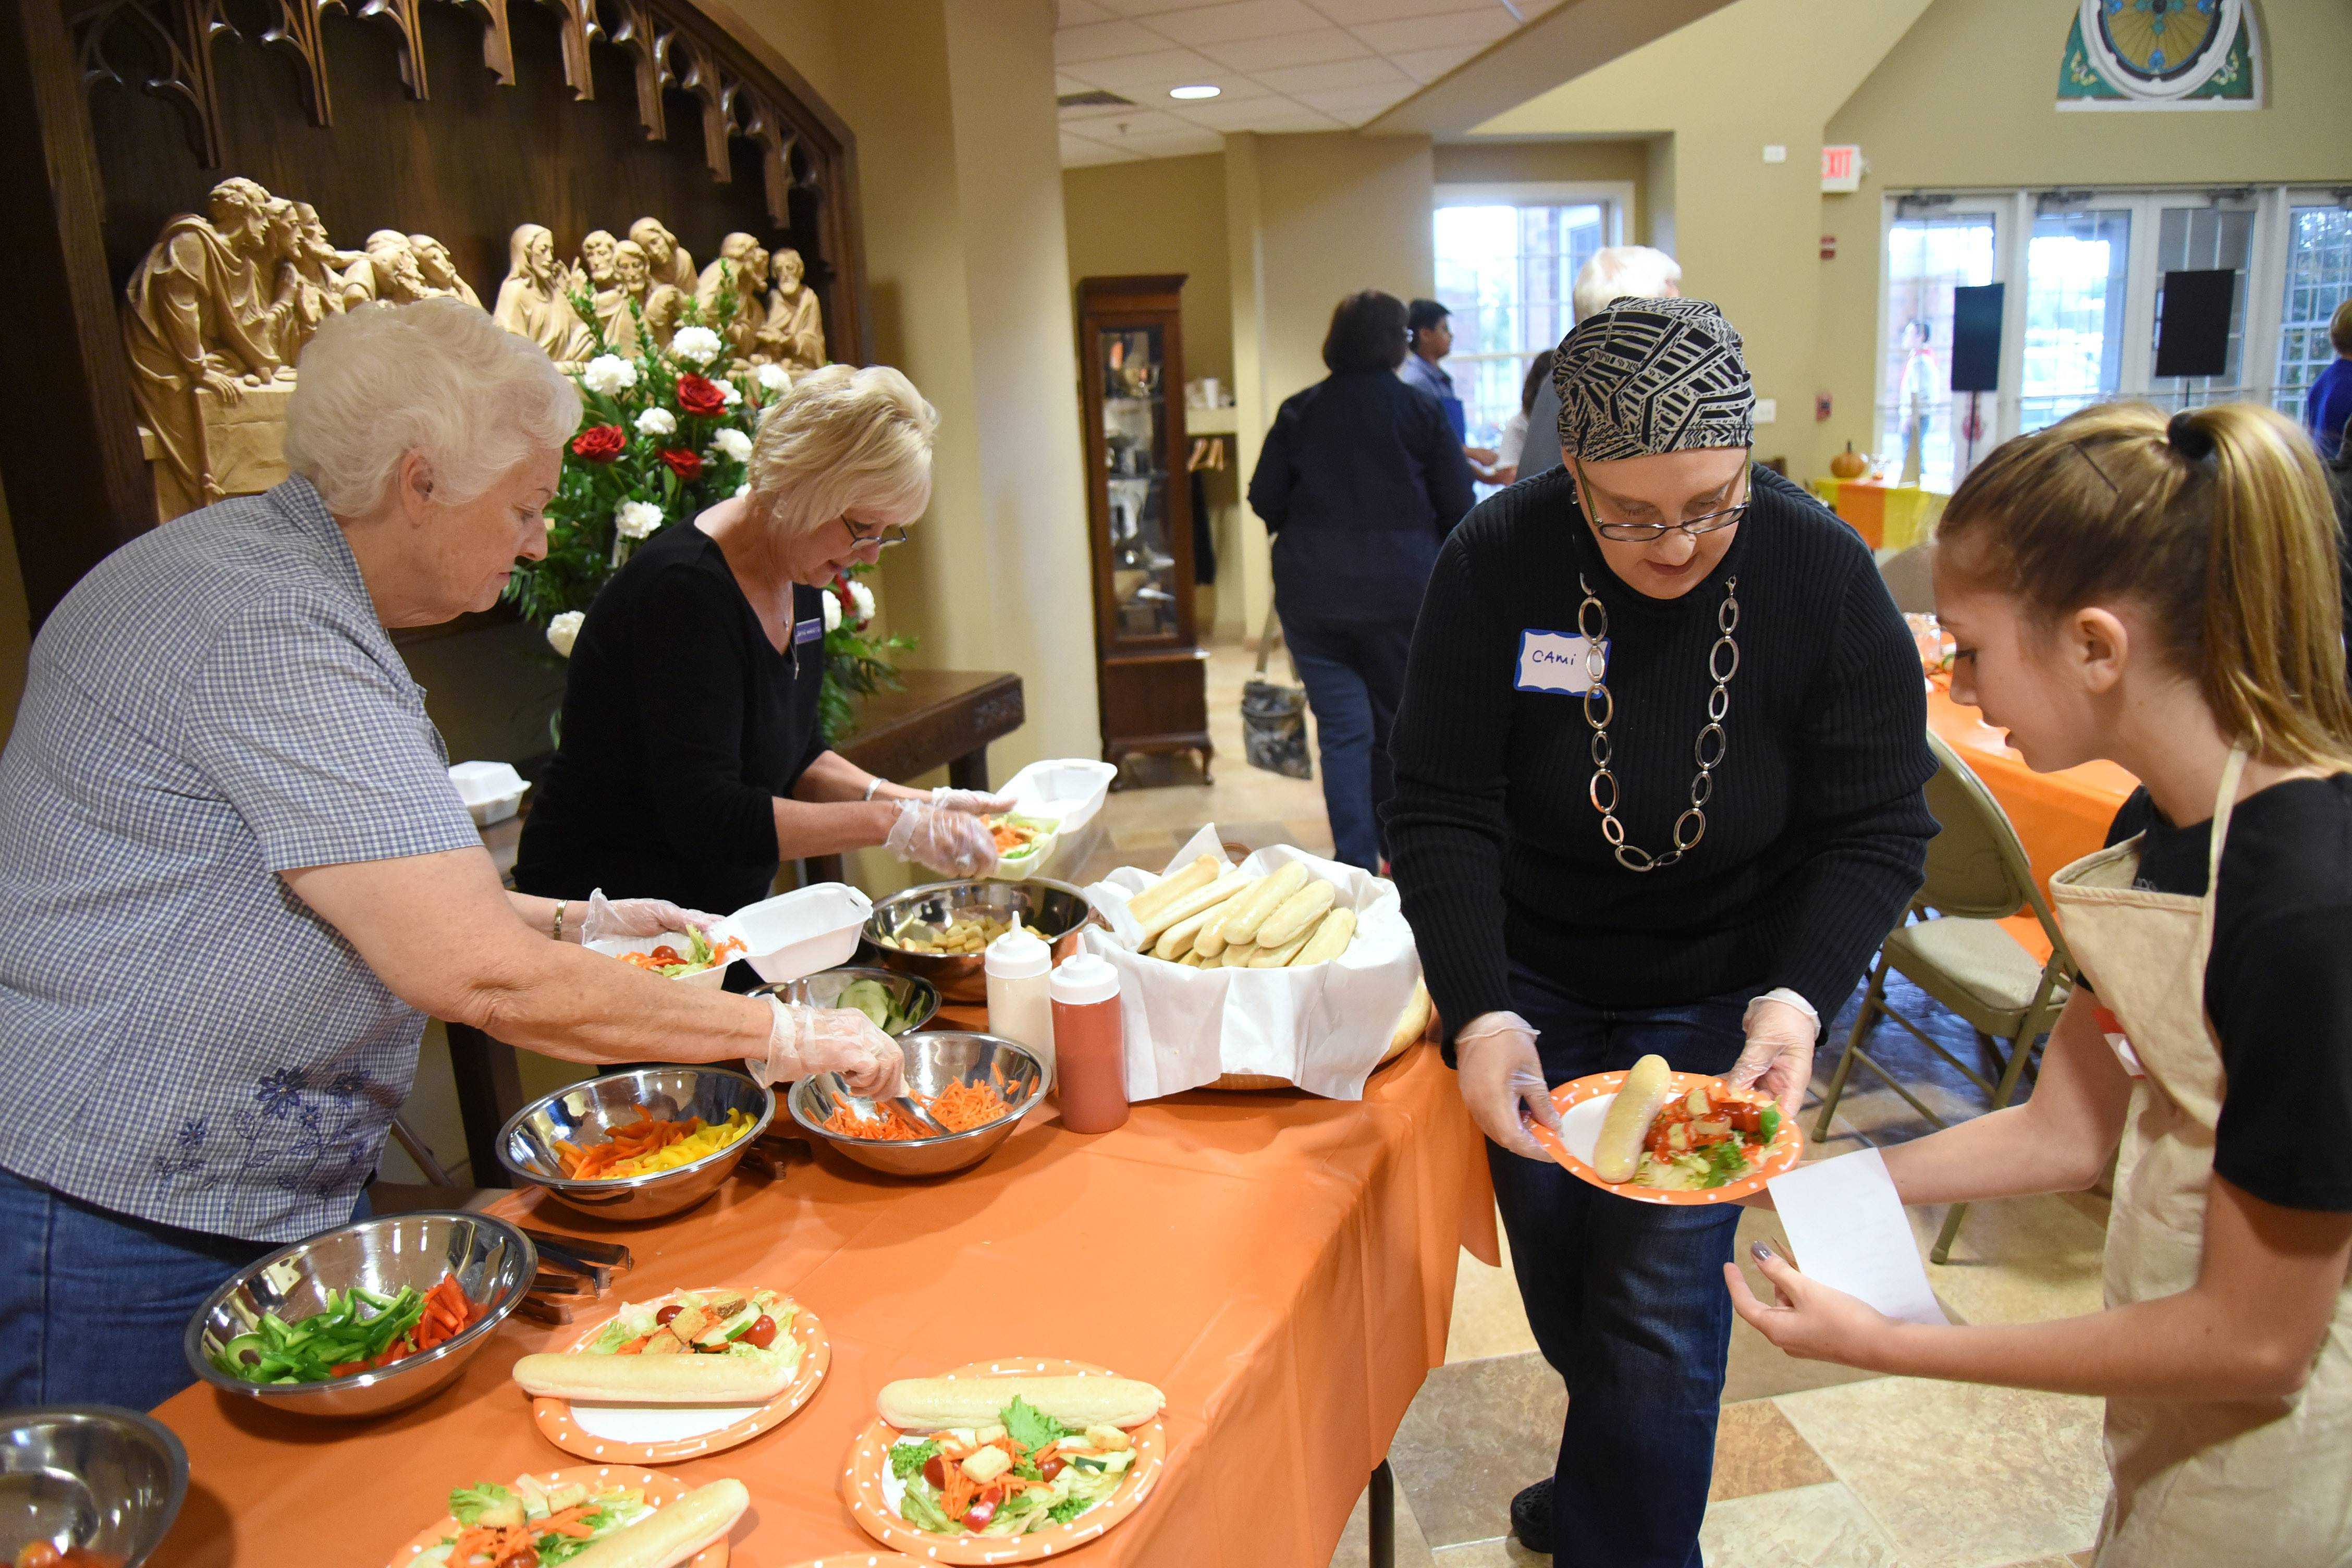 Left to right: Pat Storer of Huntley, Joanne Warkentien of West Dundee, Cami Bailey of Elgin and Alyson Doherty, 13, of West Dundee prep and serve salads as the First Congregational Church of Dundee hosts its first Hilltop Community Supper Tuesday in West Dundee.